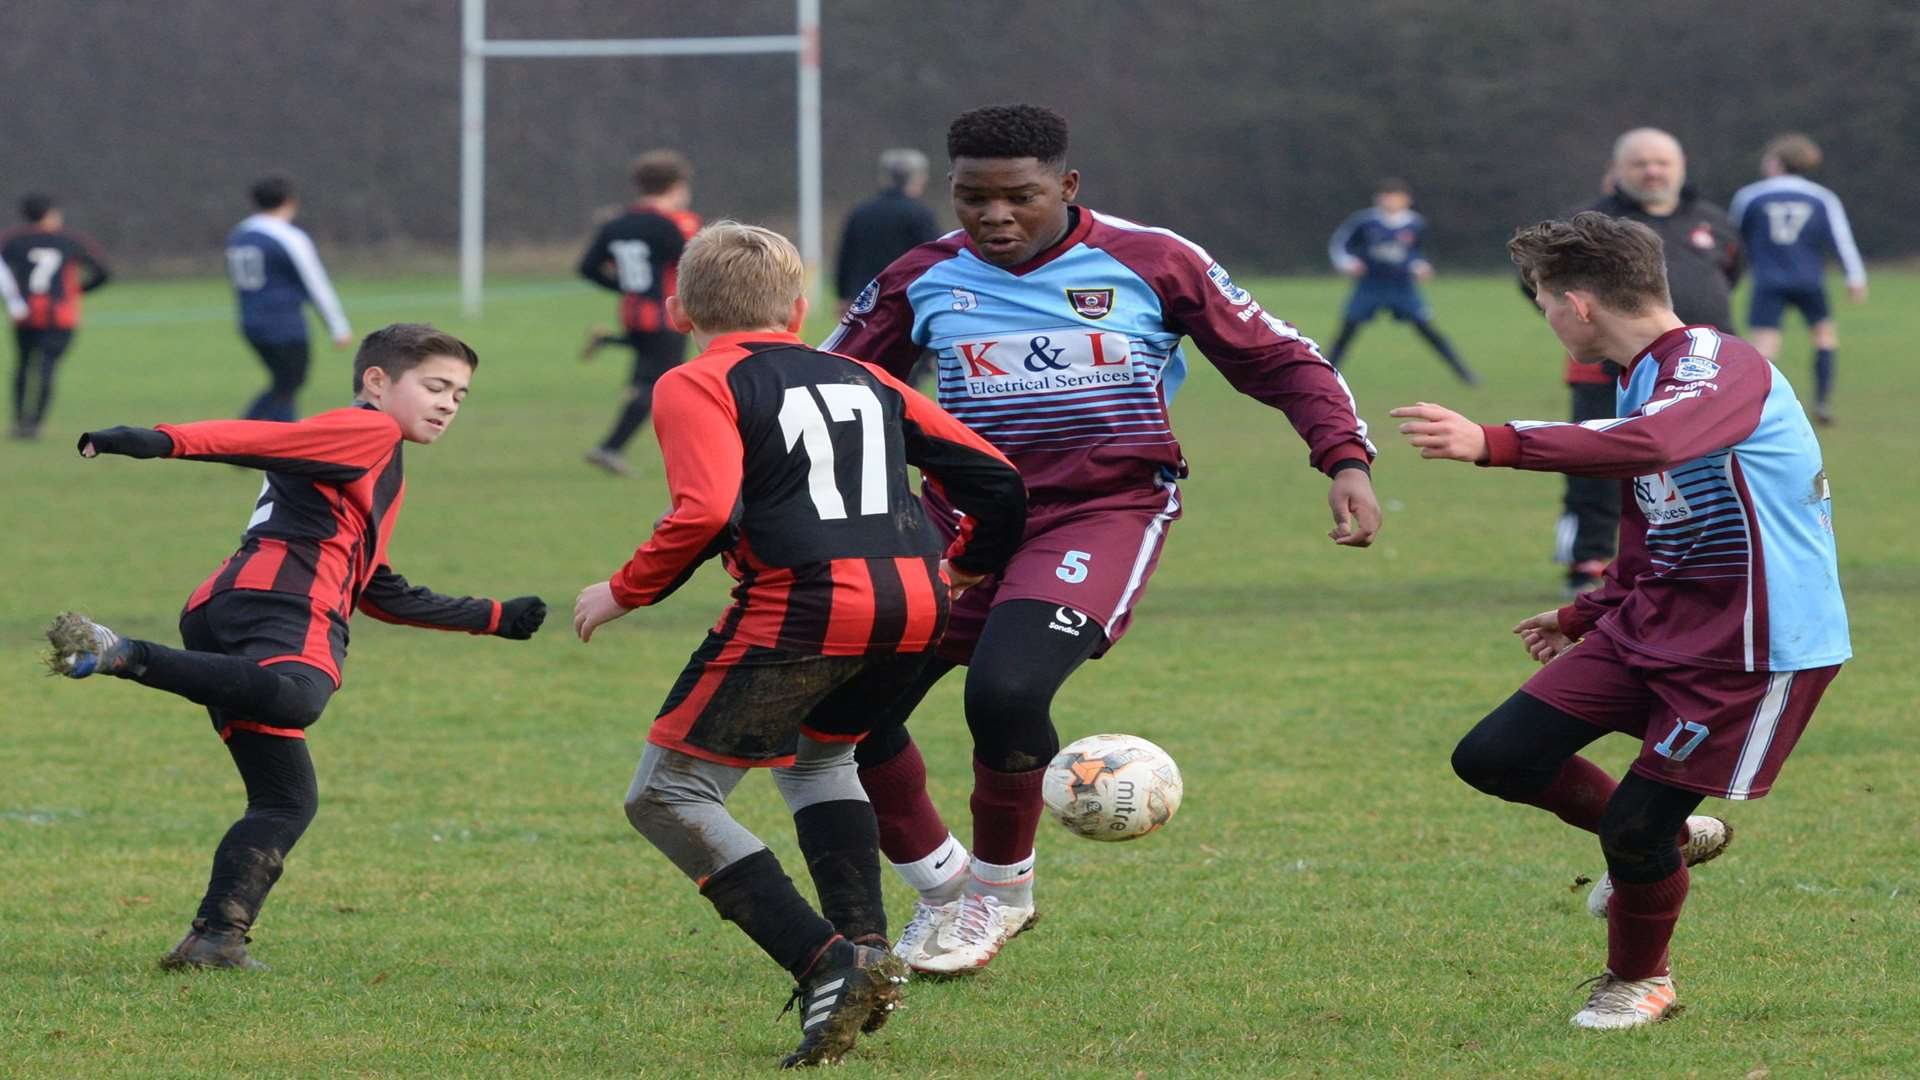 Wigmore Youth and Meopham Colts under-13s go head-to-head on Sunday Picture: Chris Davey